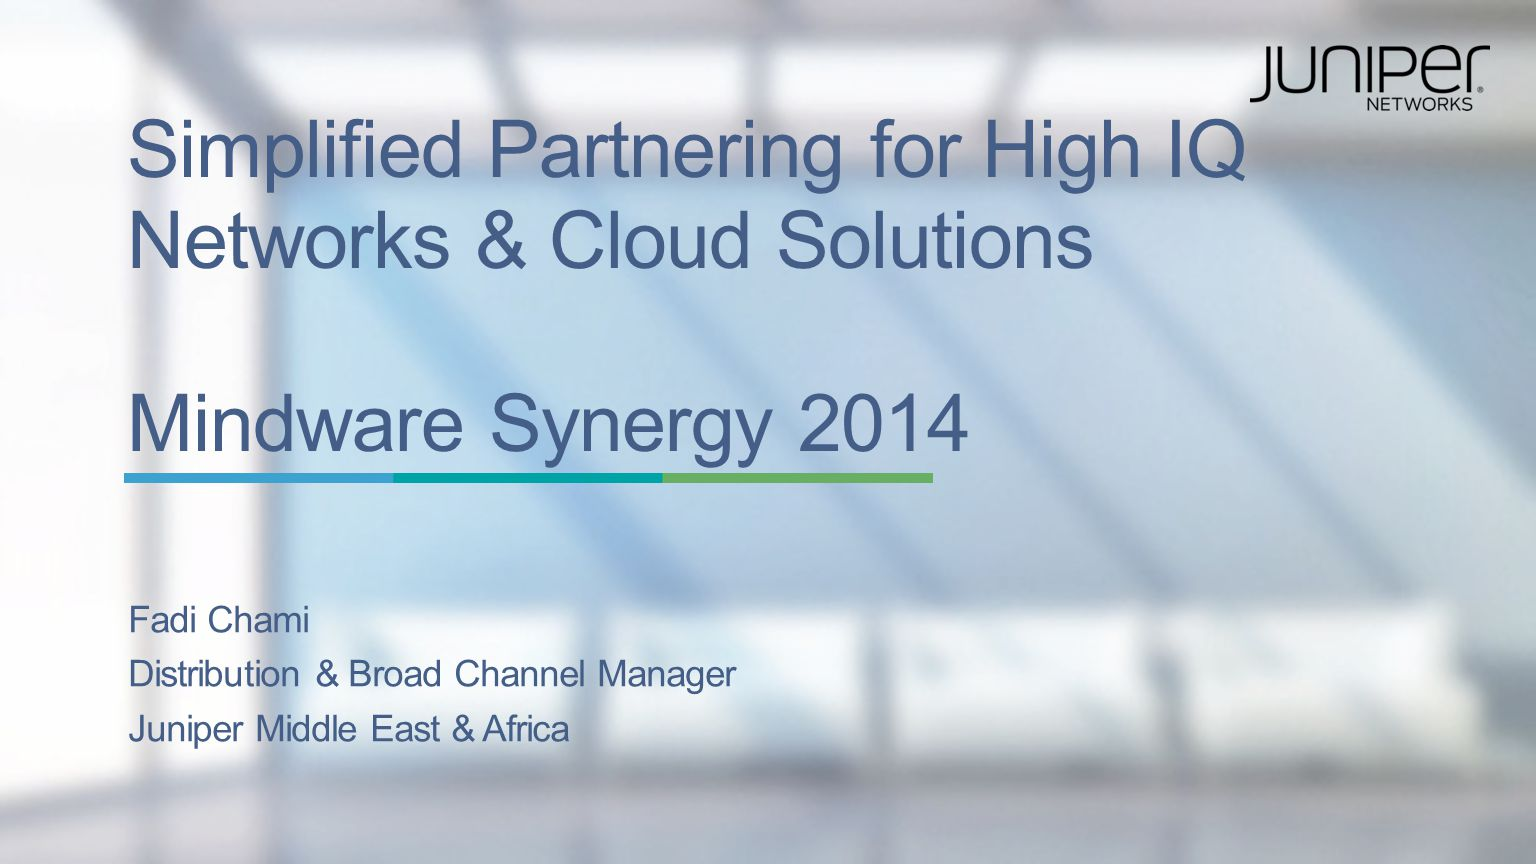 Copyright © 2014 Juniper Networks, Inc.